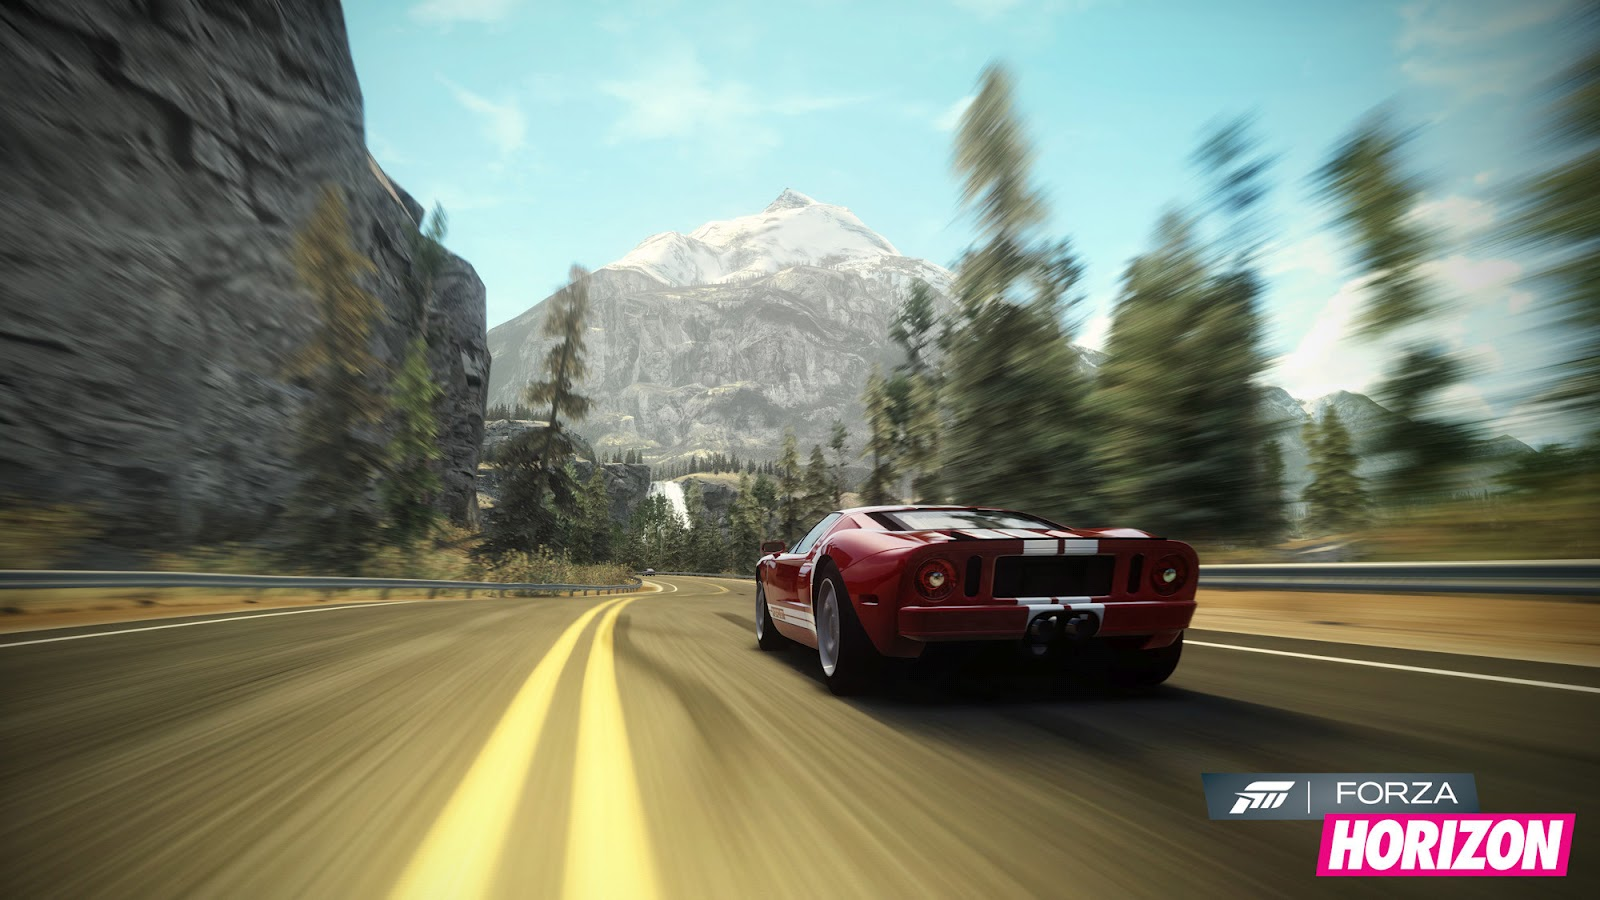 Forza Horizon HD & Widescreen Wallpaper 0.543817452382897